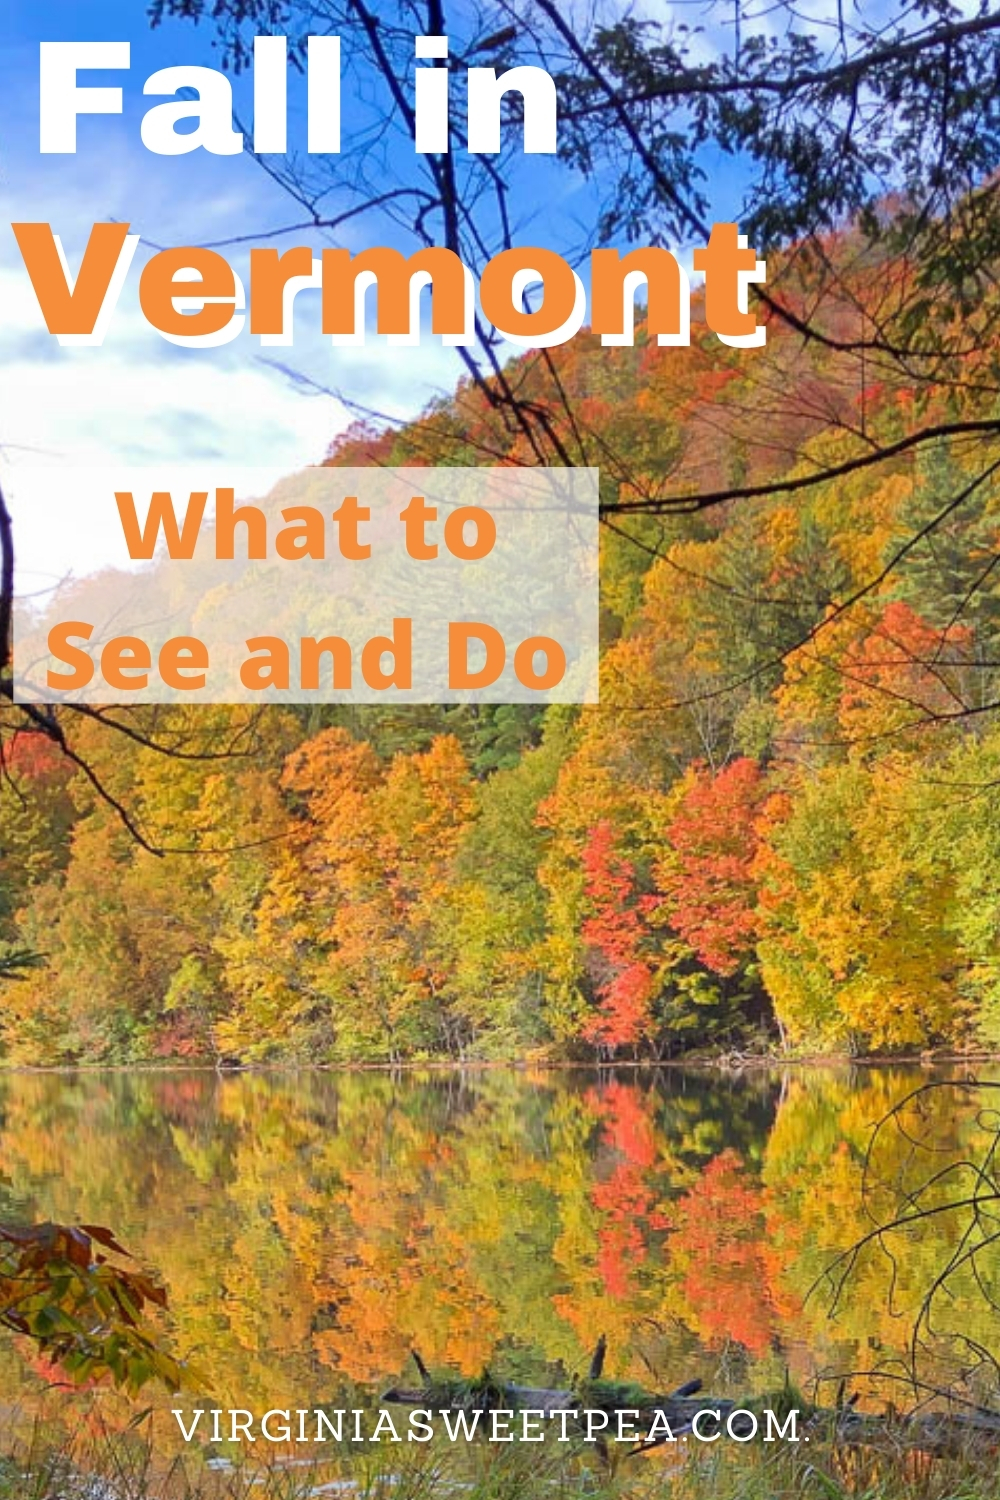 What to See and Do in Woodstock Vermont in Fall - There is nothing like seeing Vermont in fall with its amazingly colorful fall foliage.  Get ideas for things to see when traveling to Woodstock, VT, one of Vermont's most beautiful towns.  #woodstockvt #vermont #vermontfall via @spaula